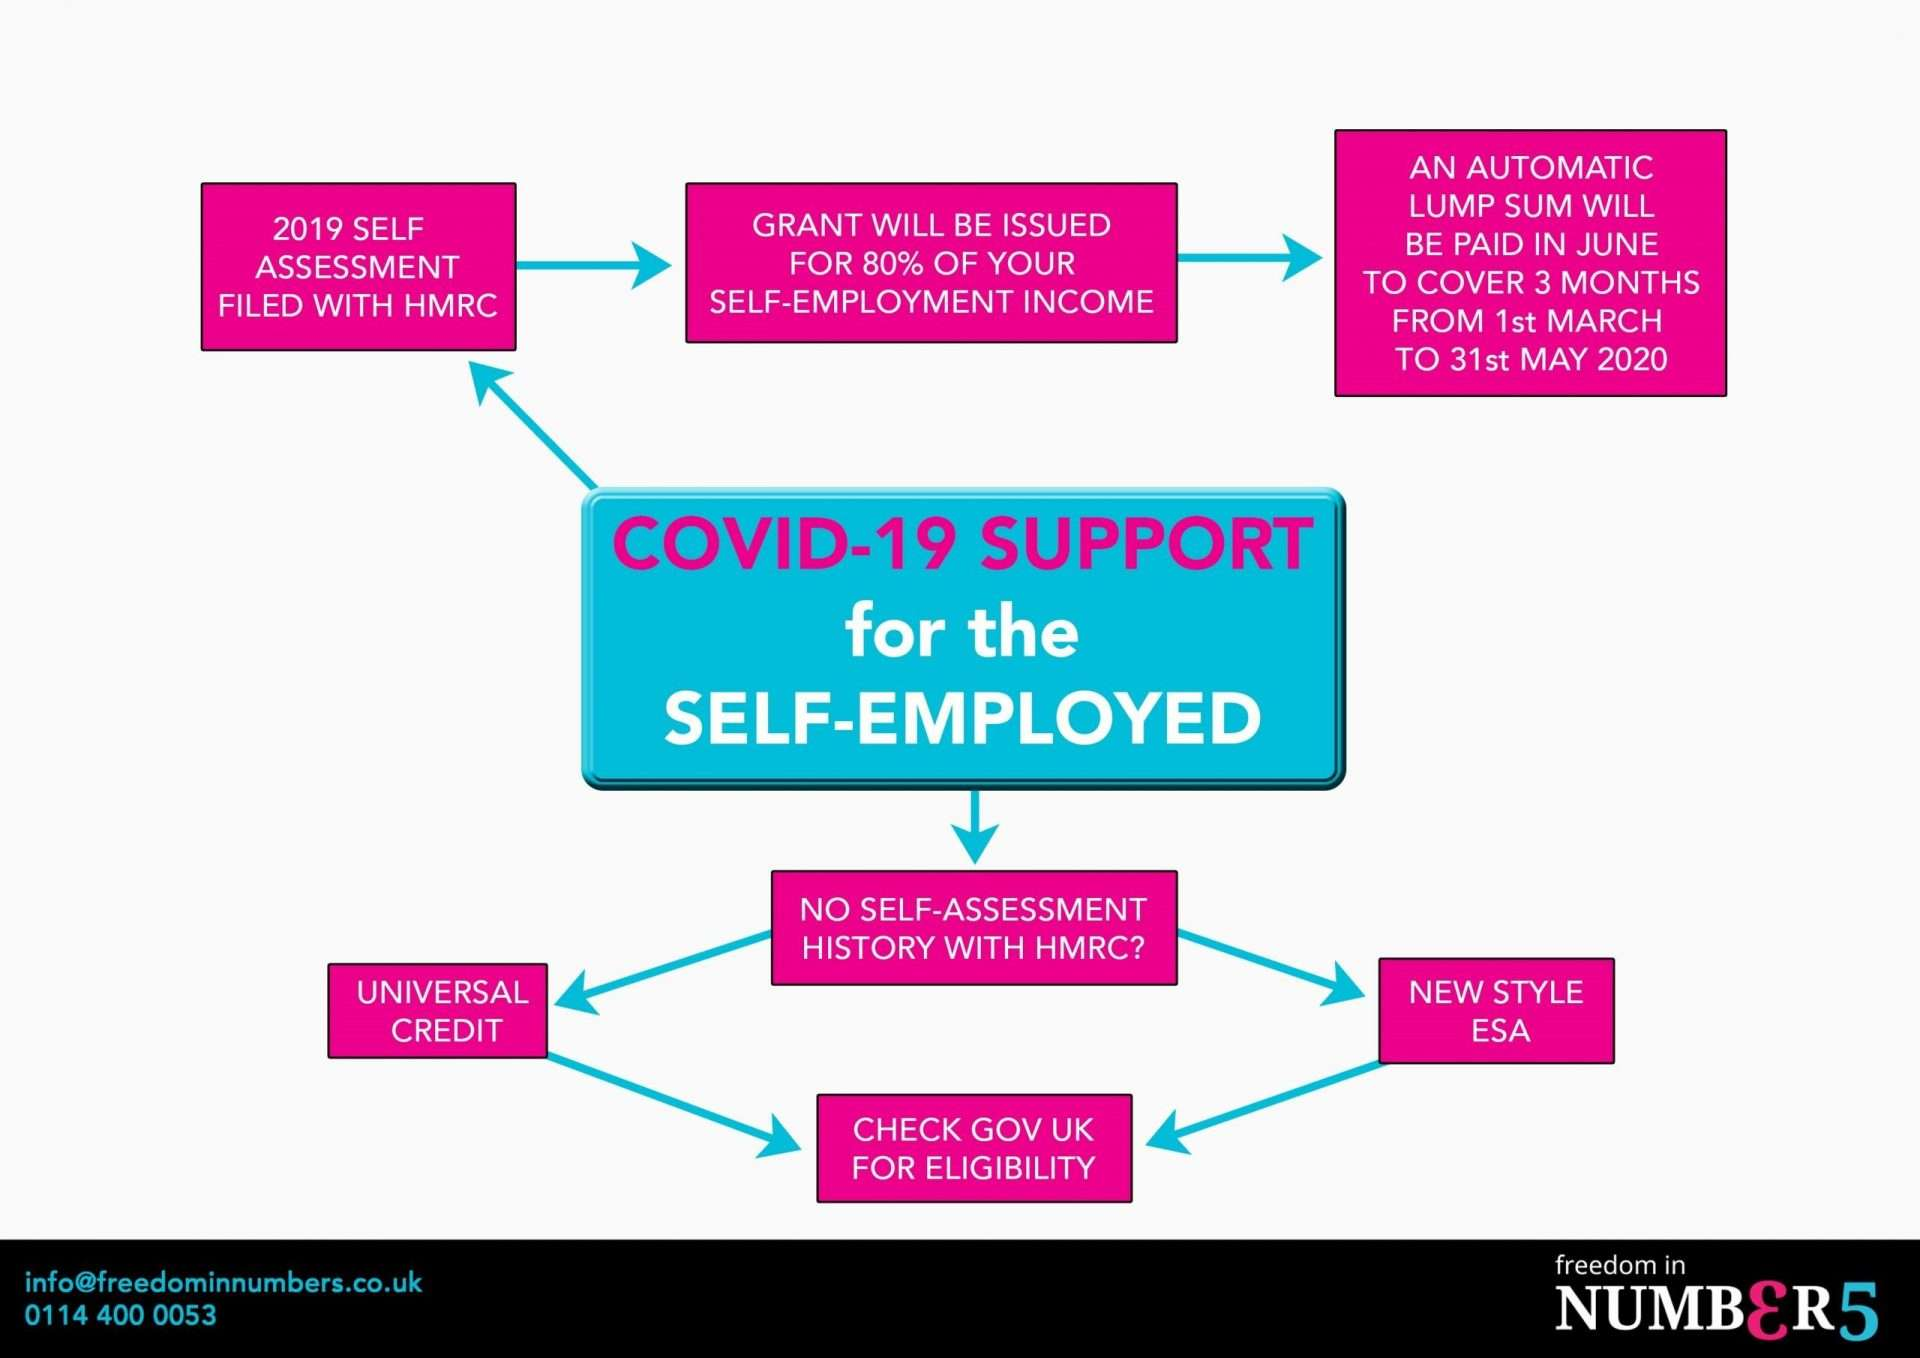 COVID-19 support for self-employed